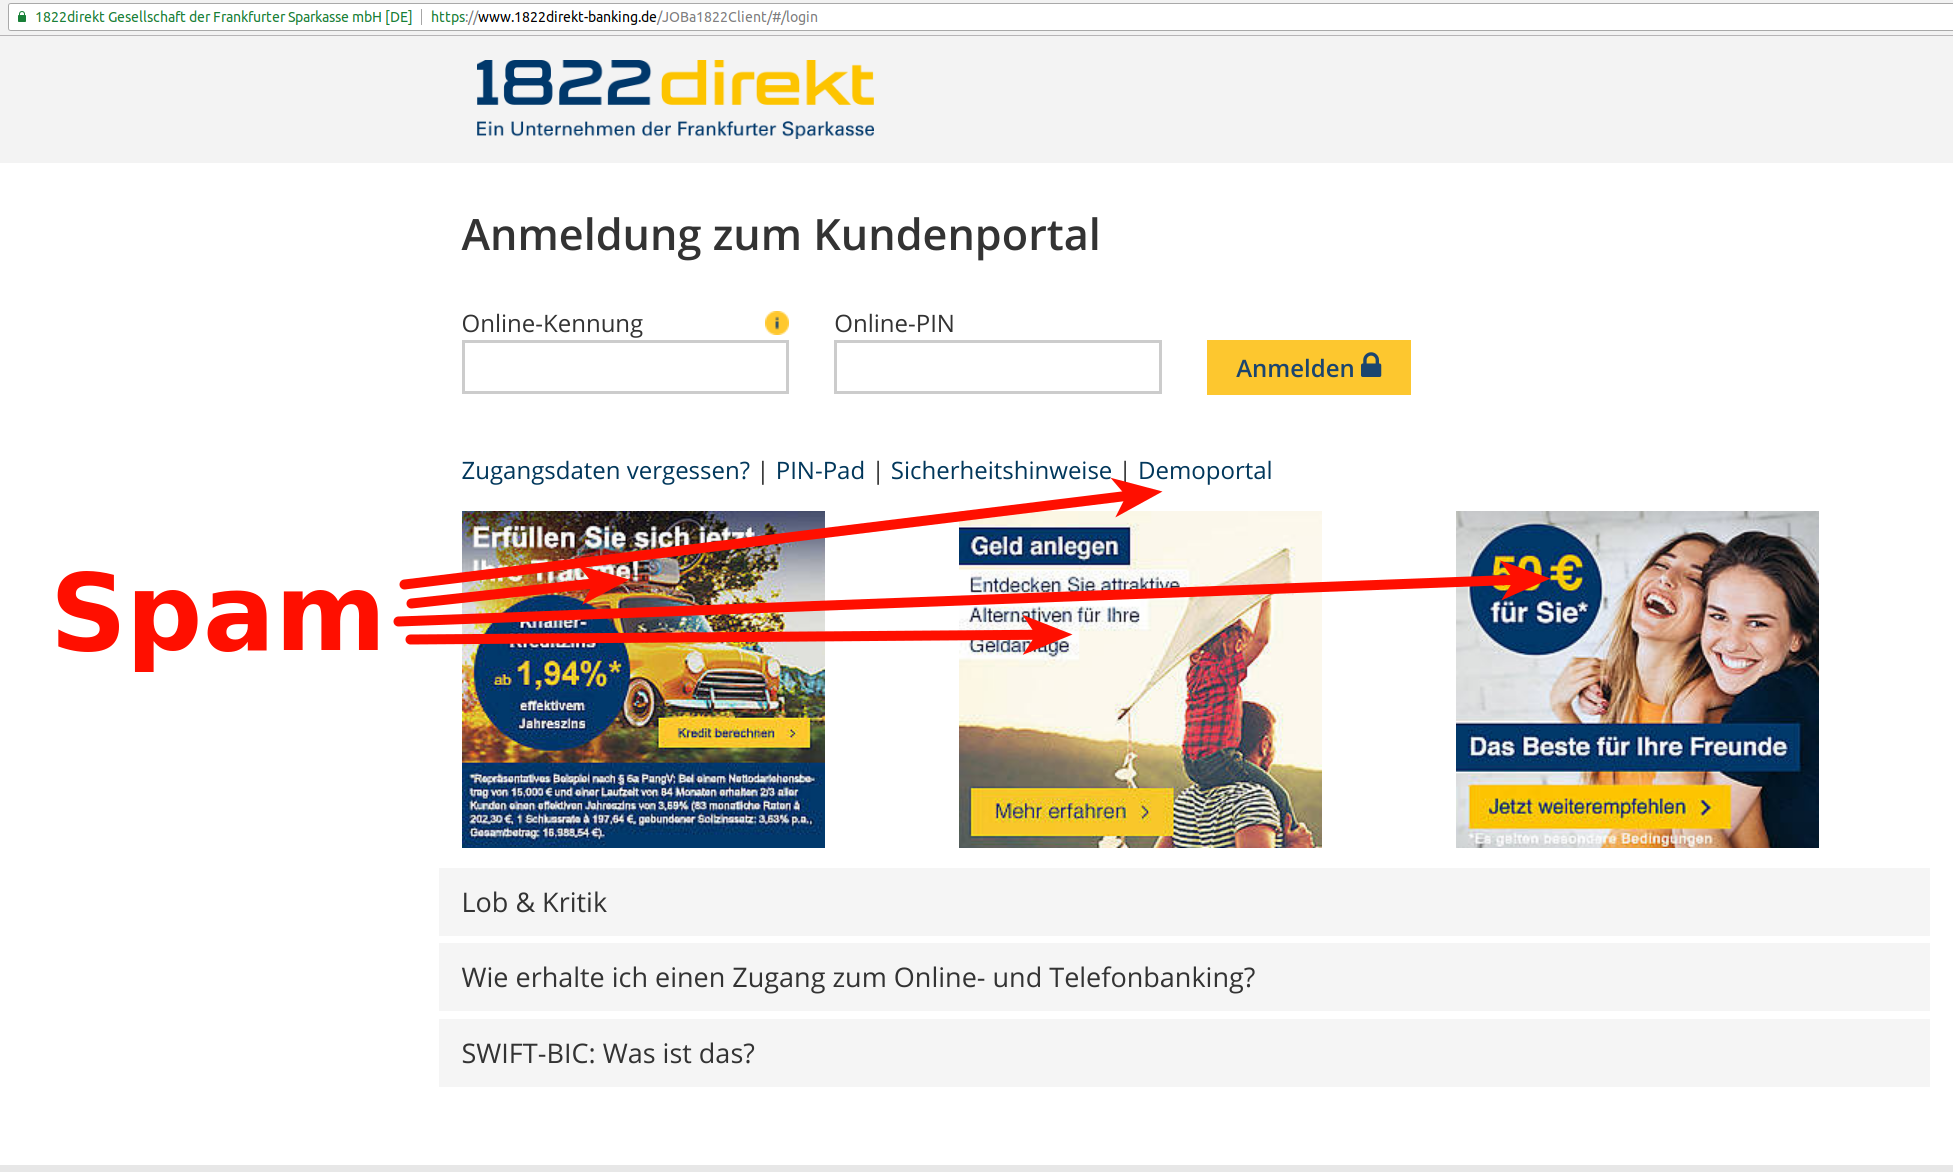 Login page of 1822direkt